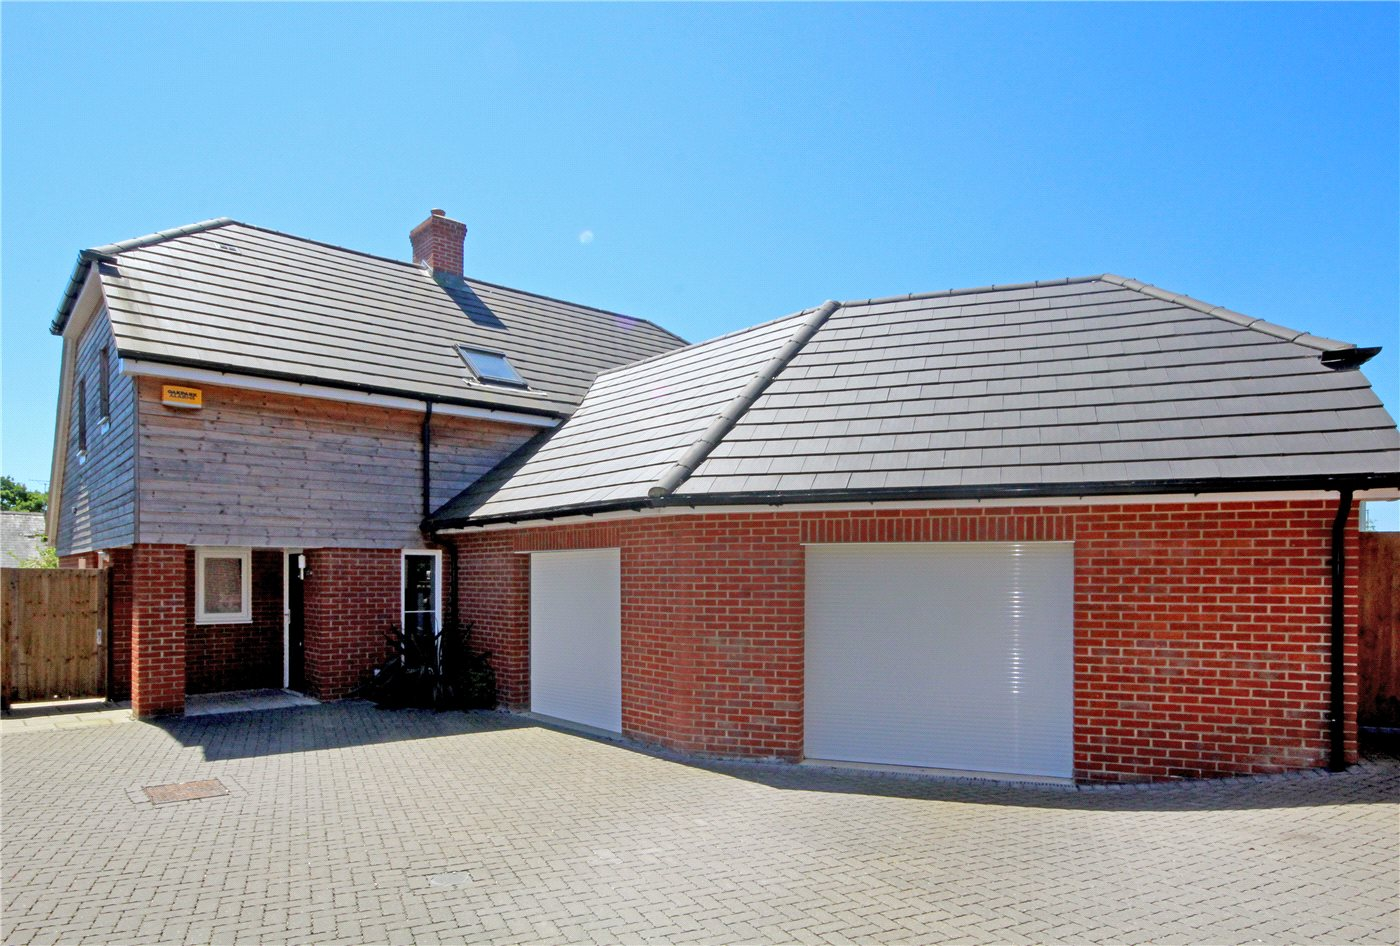 3 Bedrooms Detached House for sale in Furzey Close, Lower Parkstone, Poole, Dorset, BH14